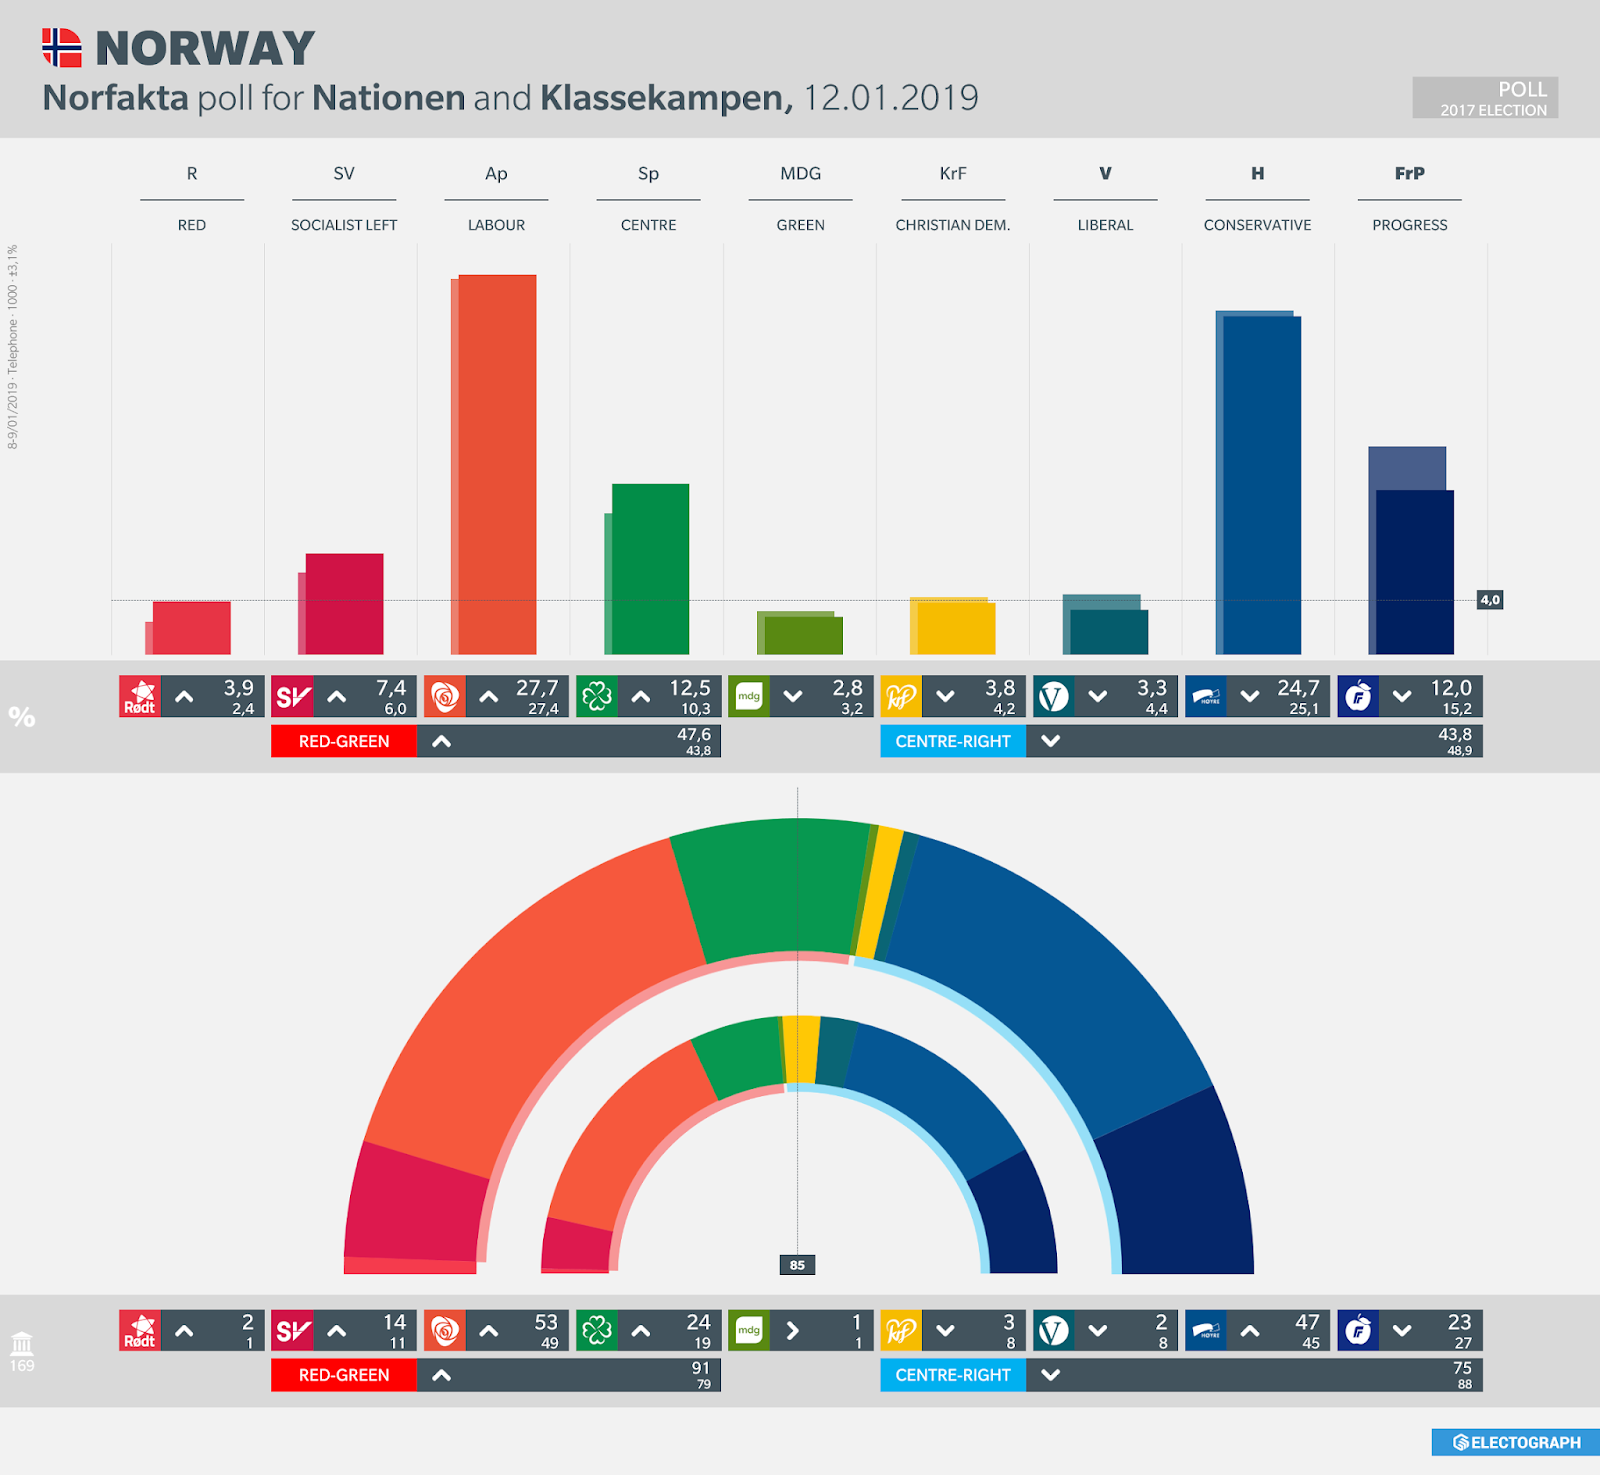 NORWAY: Norfakta poll chart for Nationen and Klassekampen, 12 January 2019